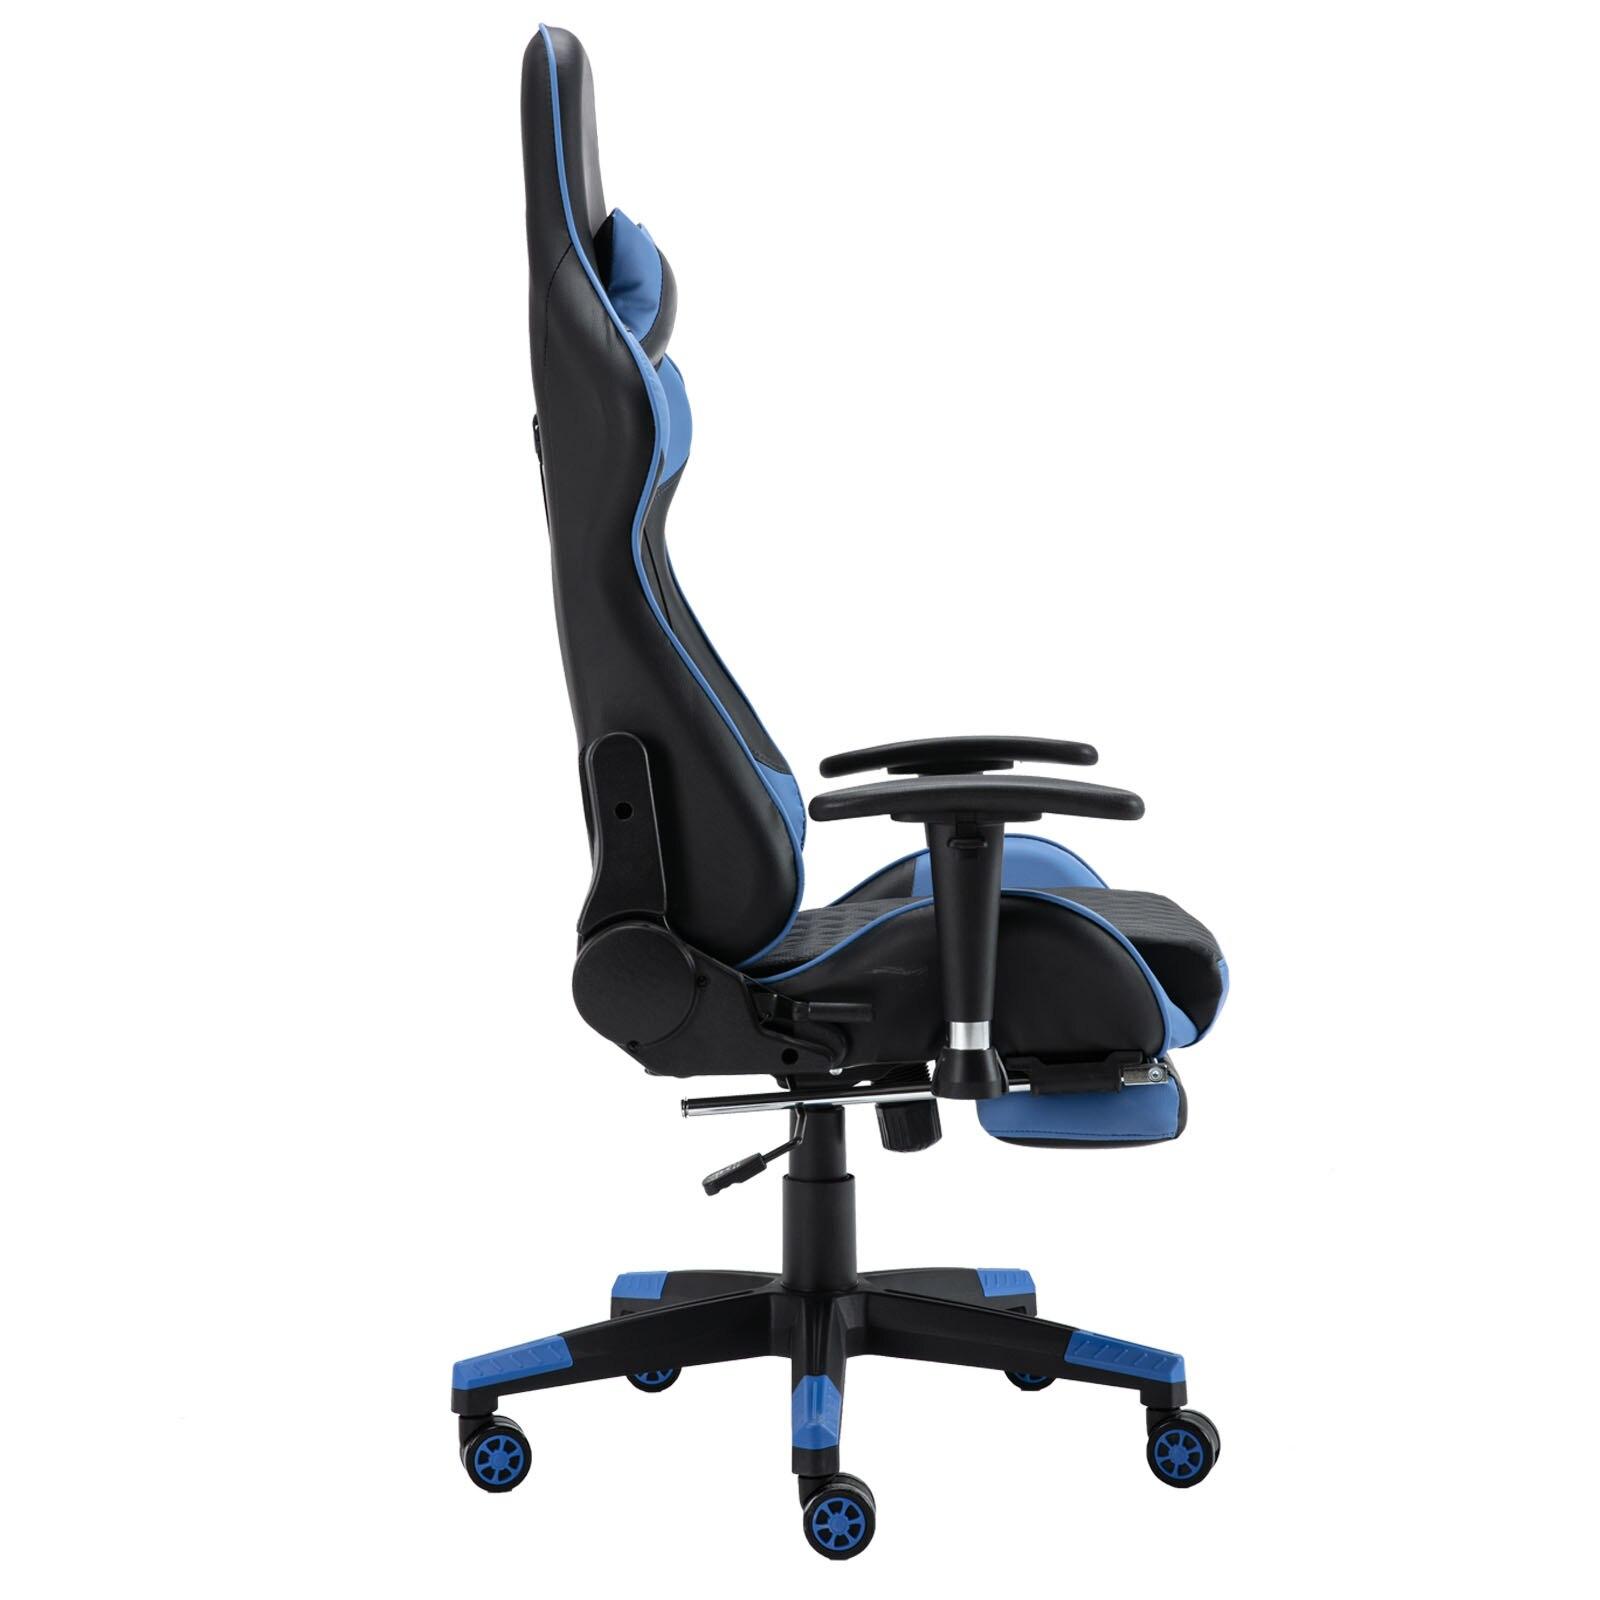 Hc69cdeea31cf4748a463d9c03791c4f8g - Gaming Chair Computer Armchair Adjustable Armrest And Footrest PVC Household Office Chair Ergonomic Computer Gamer Chair